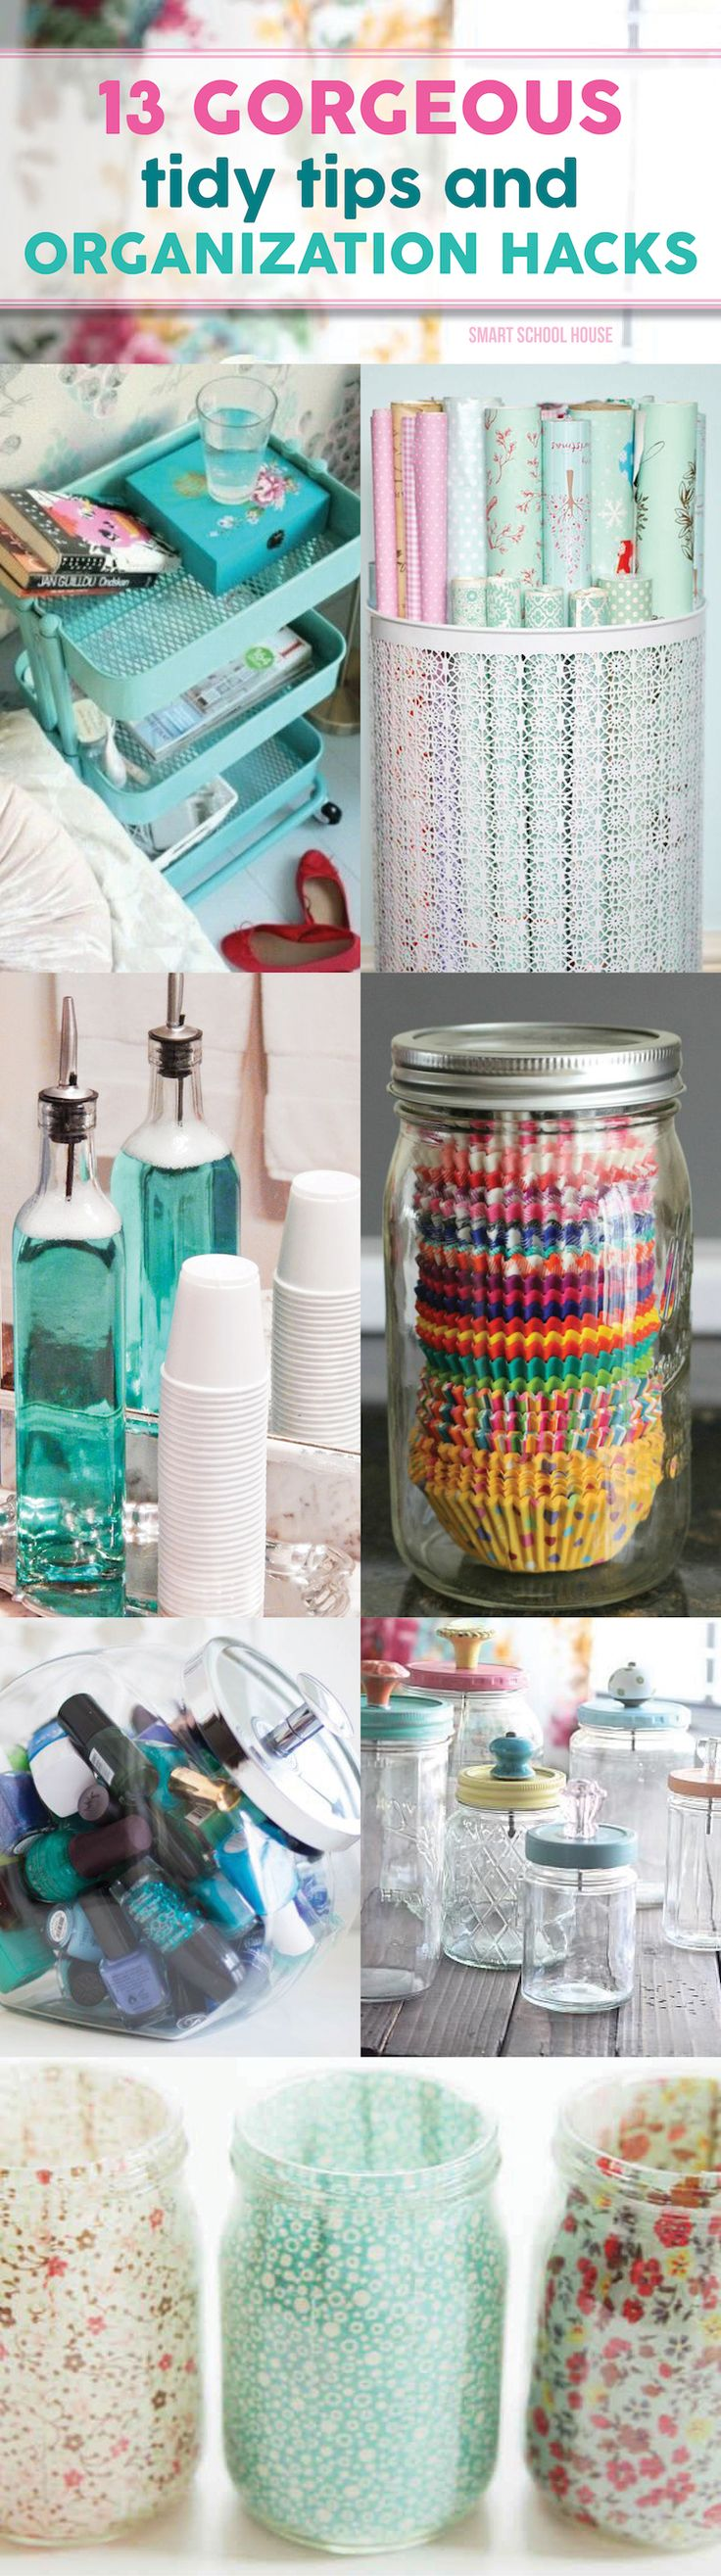 Gorgeous Tidy Tips and Organization Hacks